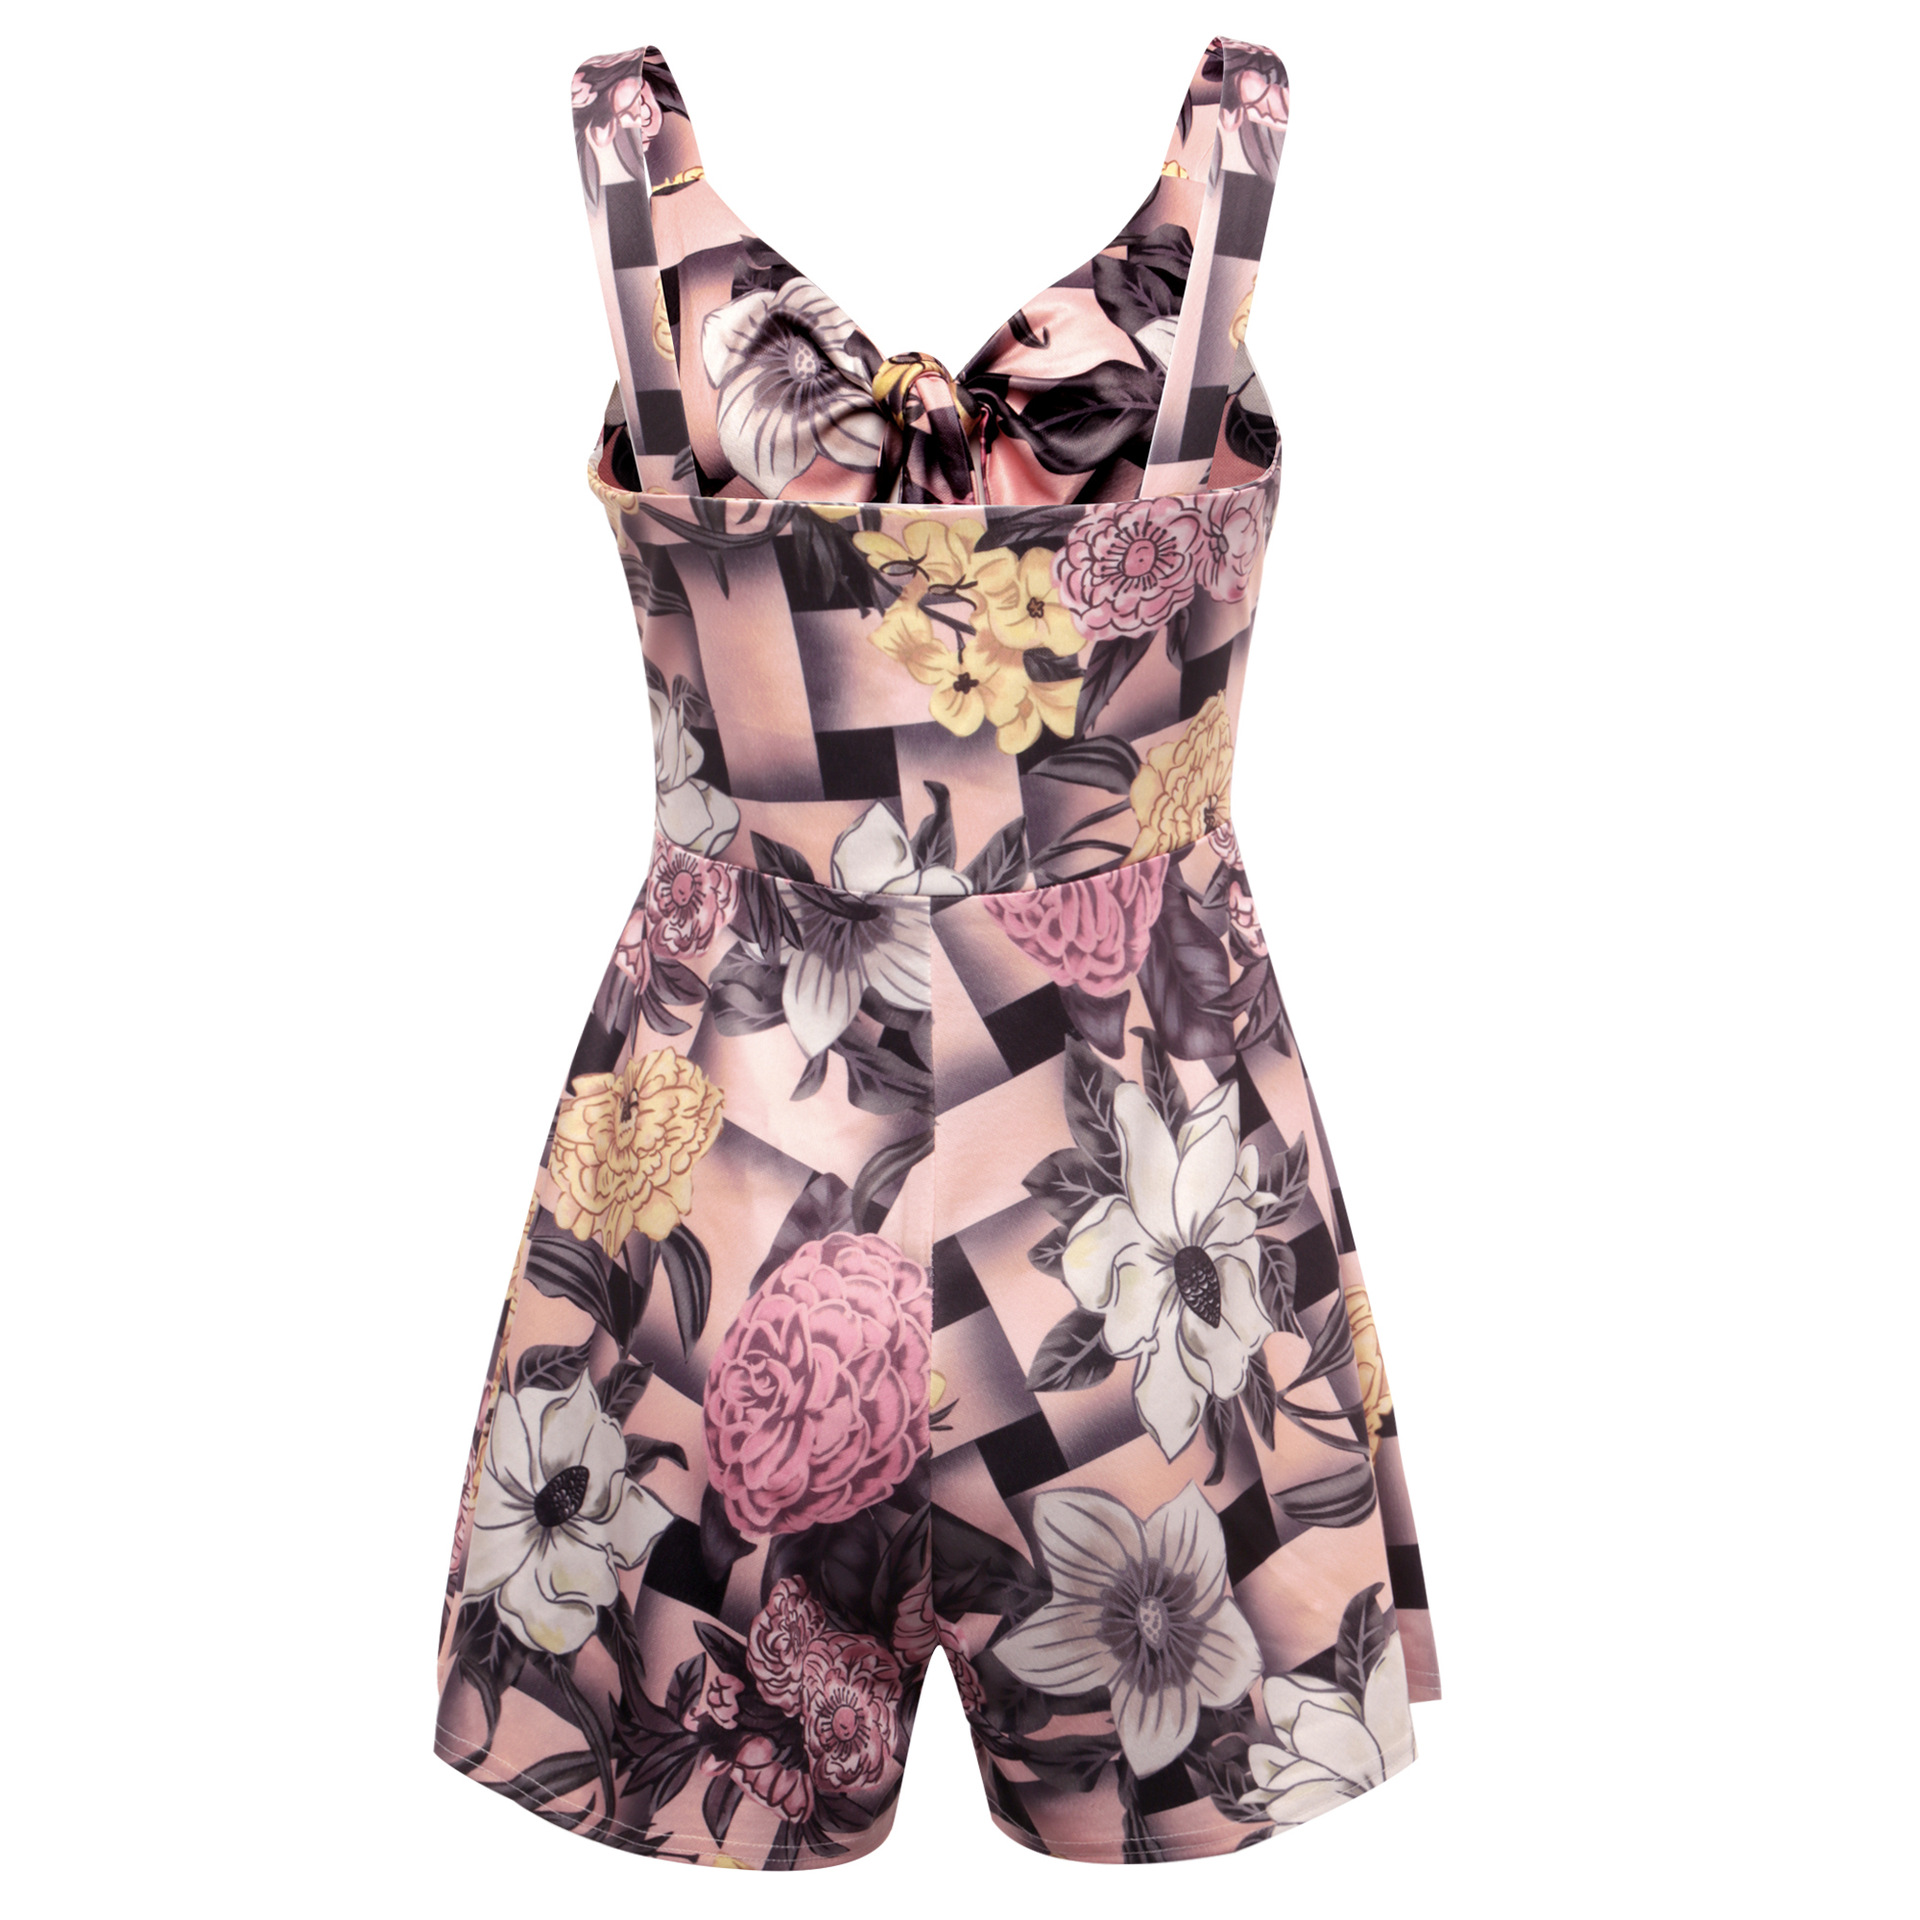 Women's Summer Print Jumpsuit Shorts Casual Loose Short Sleeve V-neck Beach Rompers Sleeveless Bodycon Sexy Party Playsuit 102